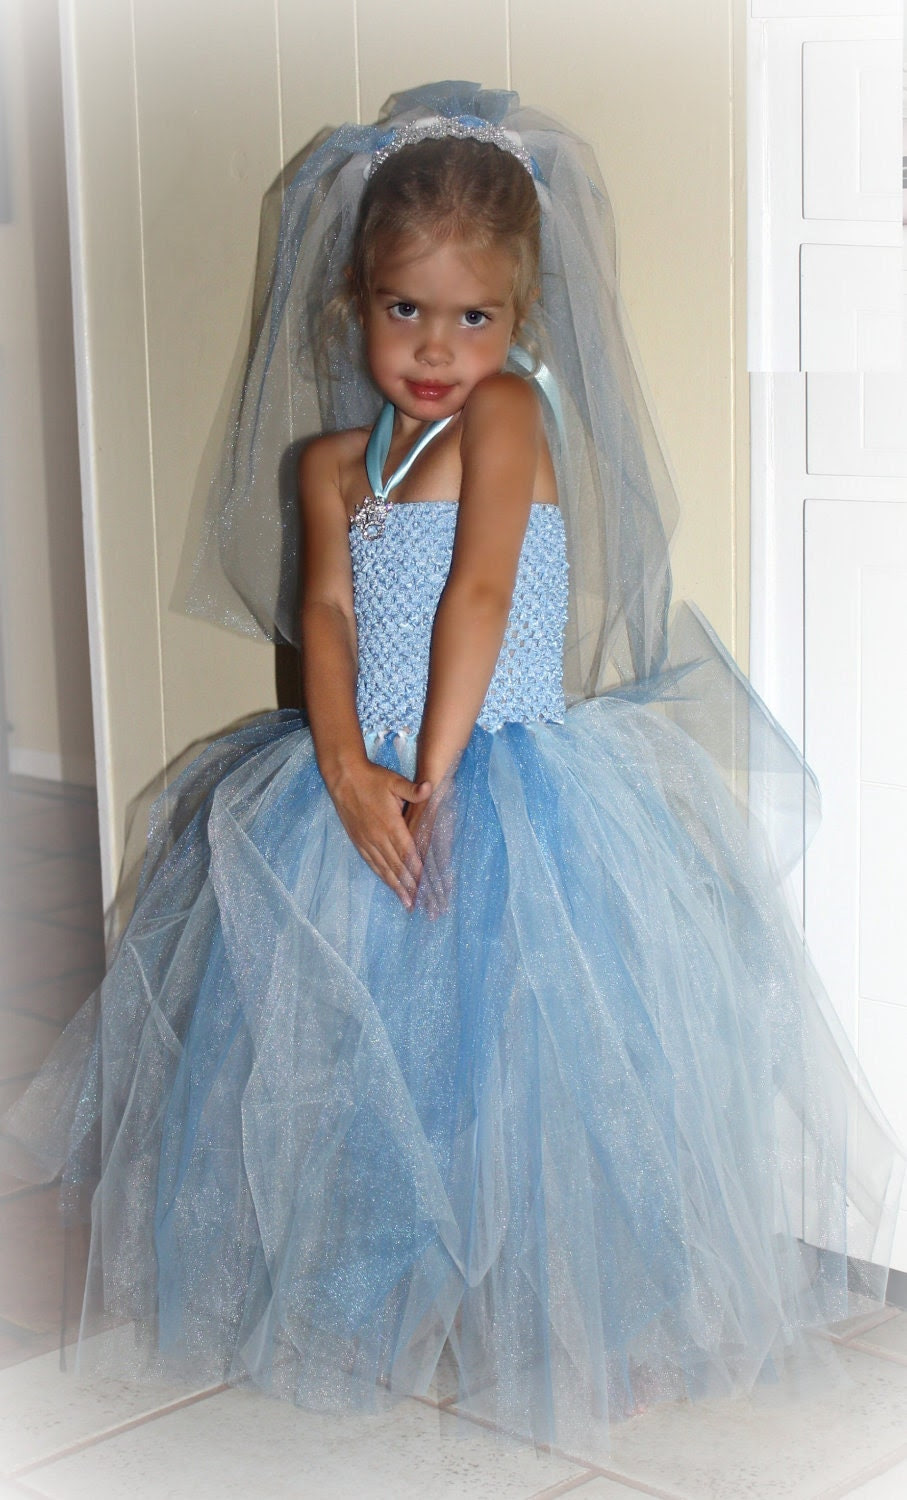 Epilepsy Awareness Blue Cinderella Wedding Tutu Dress w/ Options